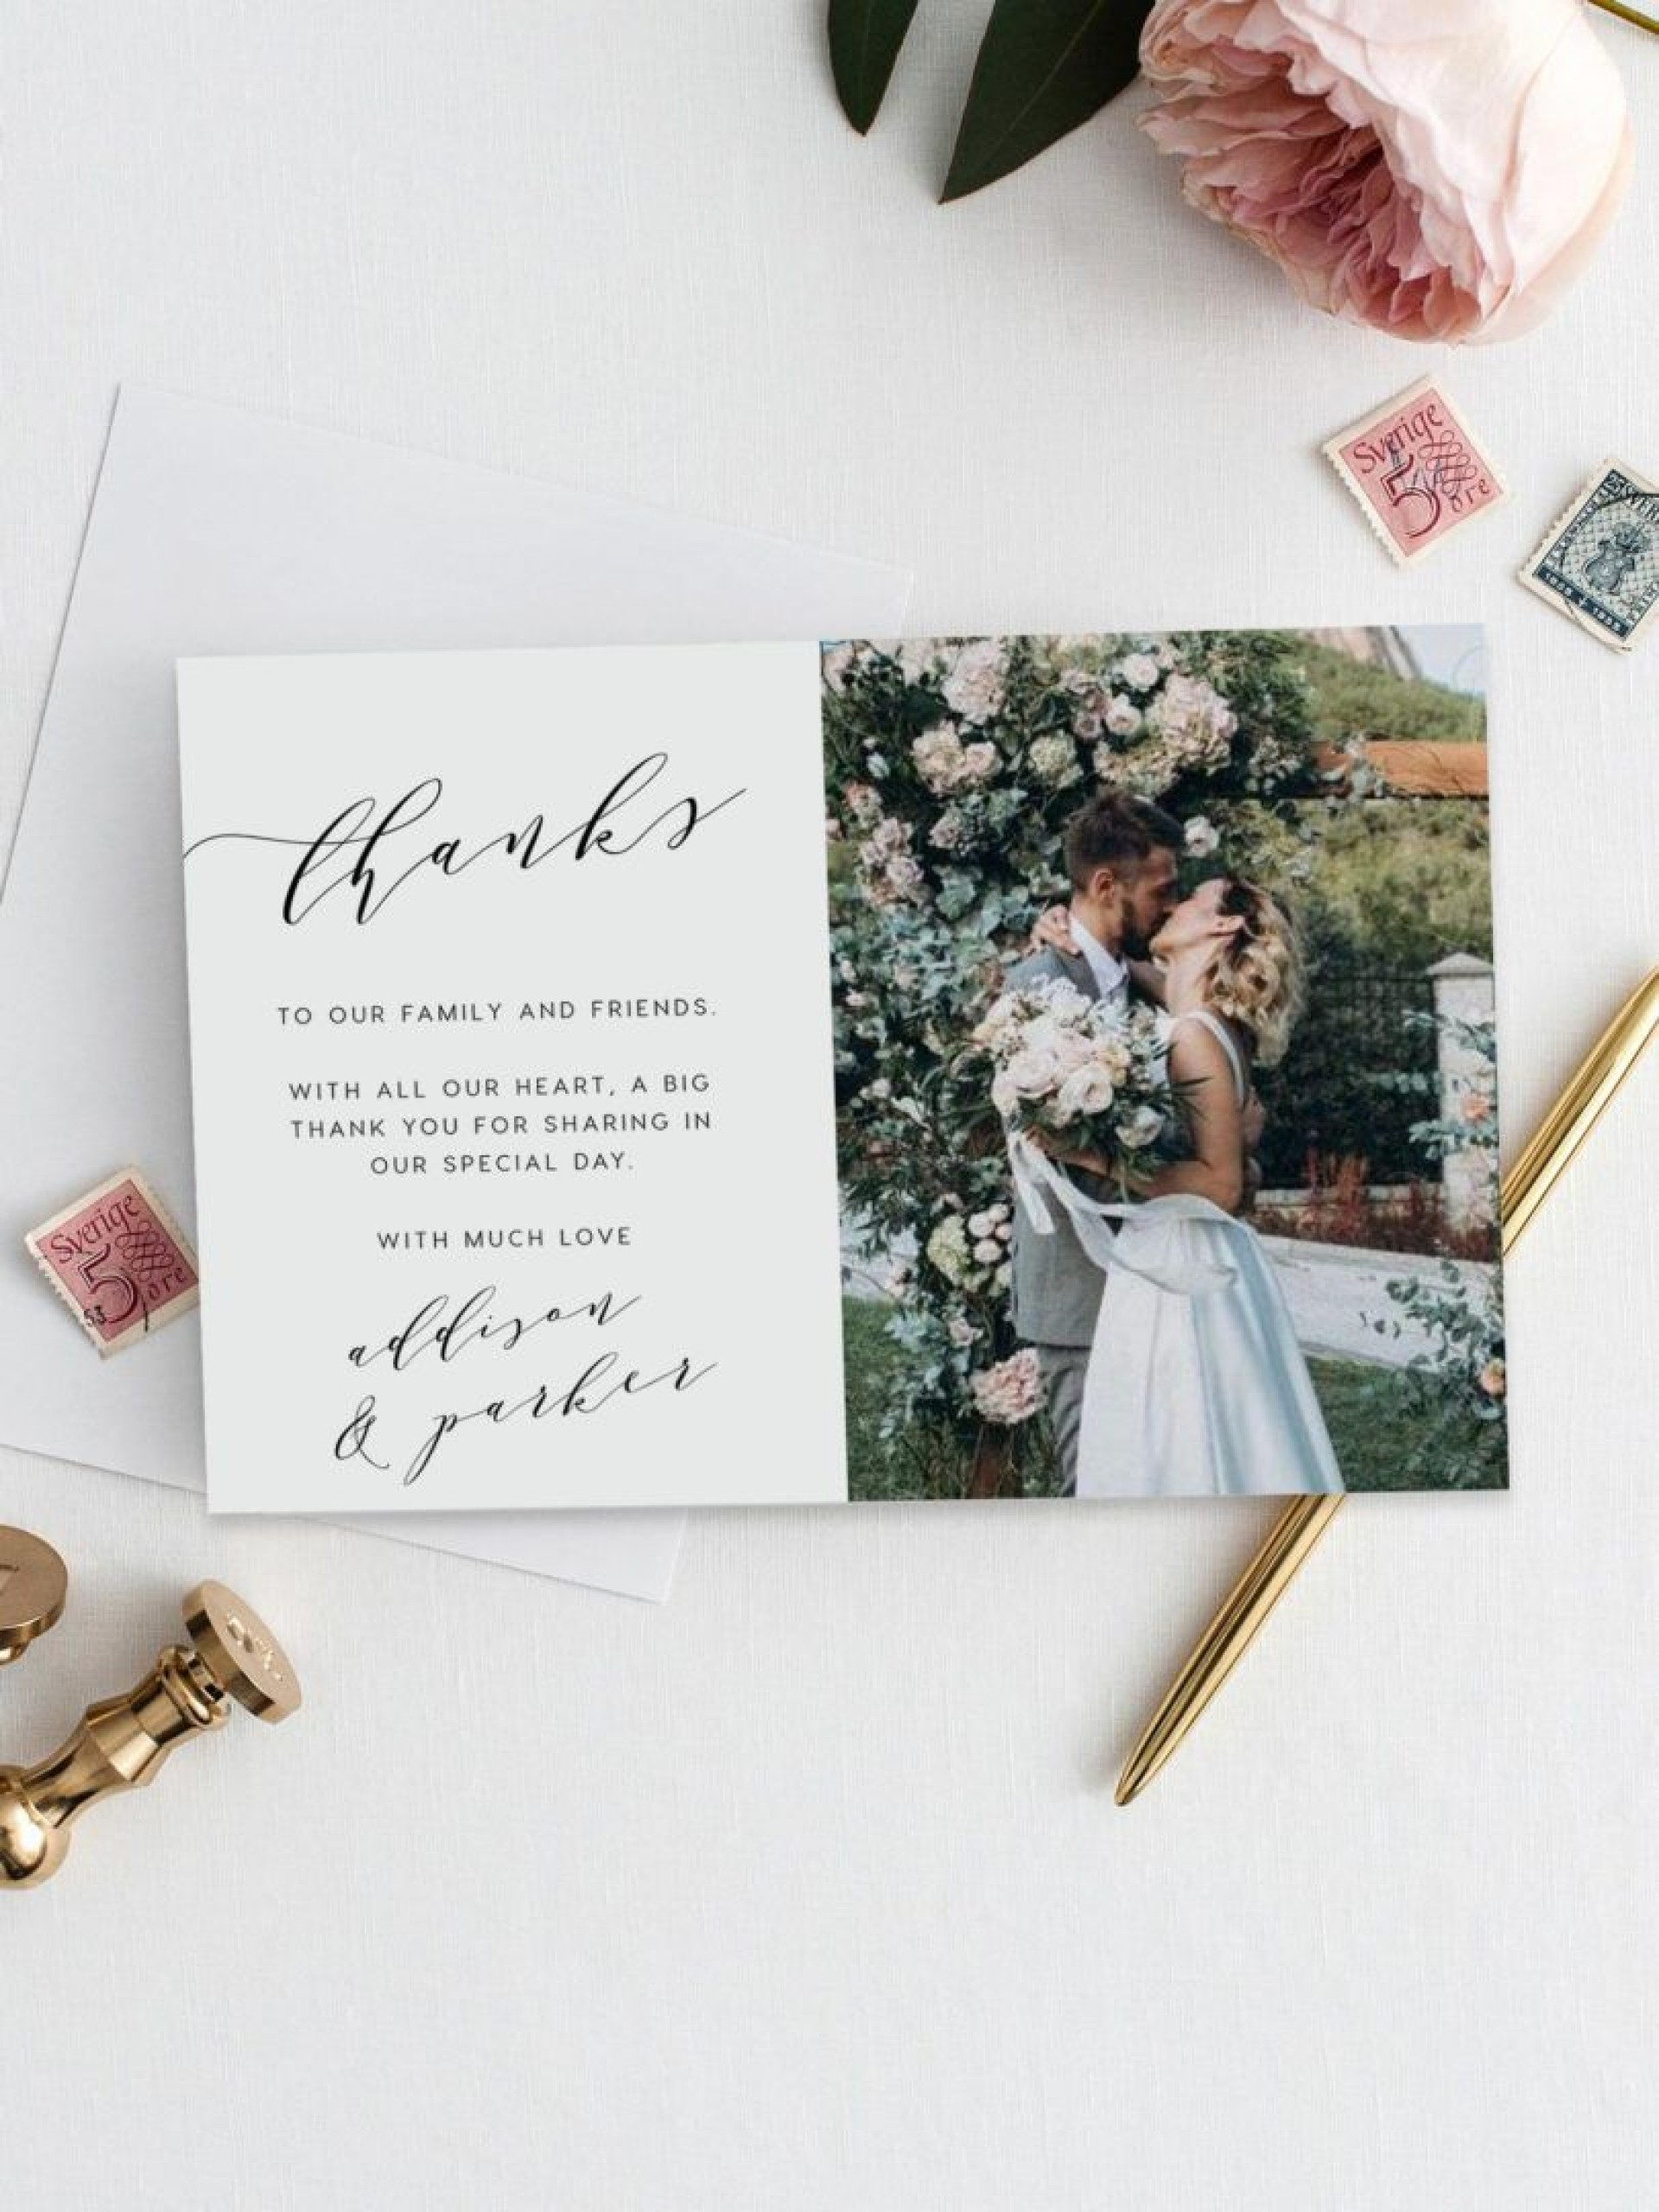 008 Unique Thank You Note Template Wedding High Definition  Card Etsy Wording1920